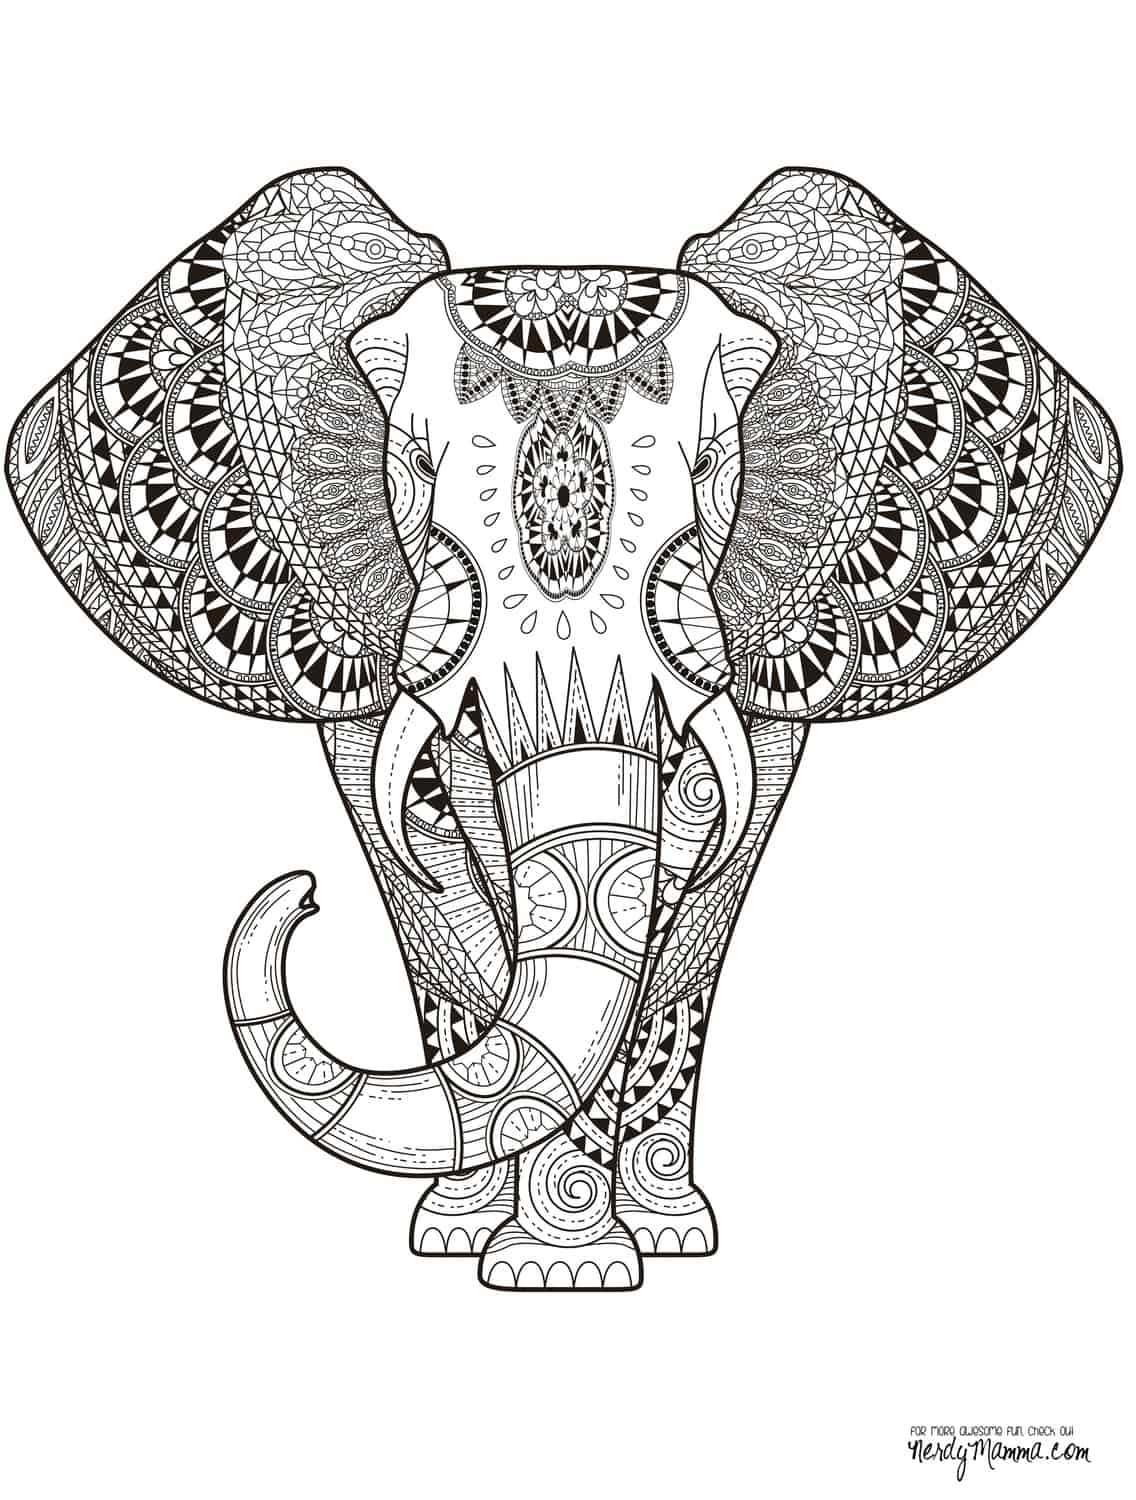 Elephant coloring pages free - Get The Free Downloadable Jpg Here